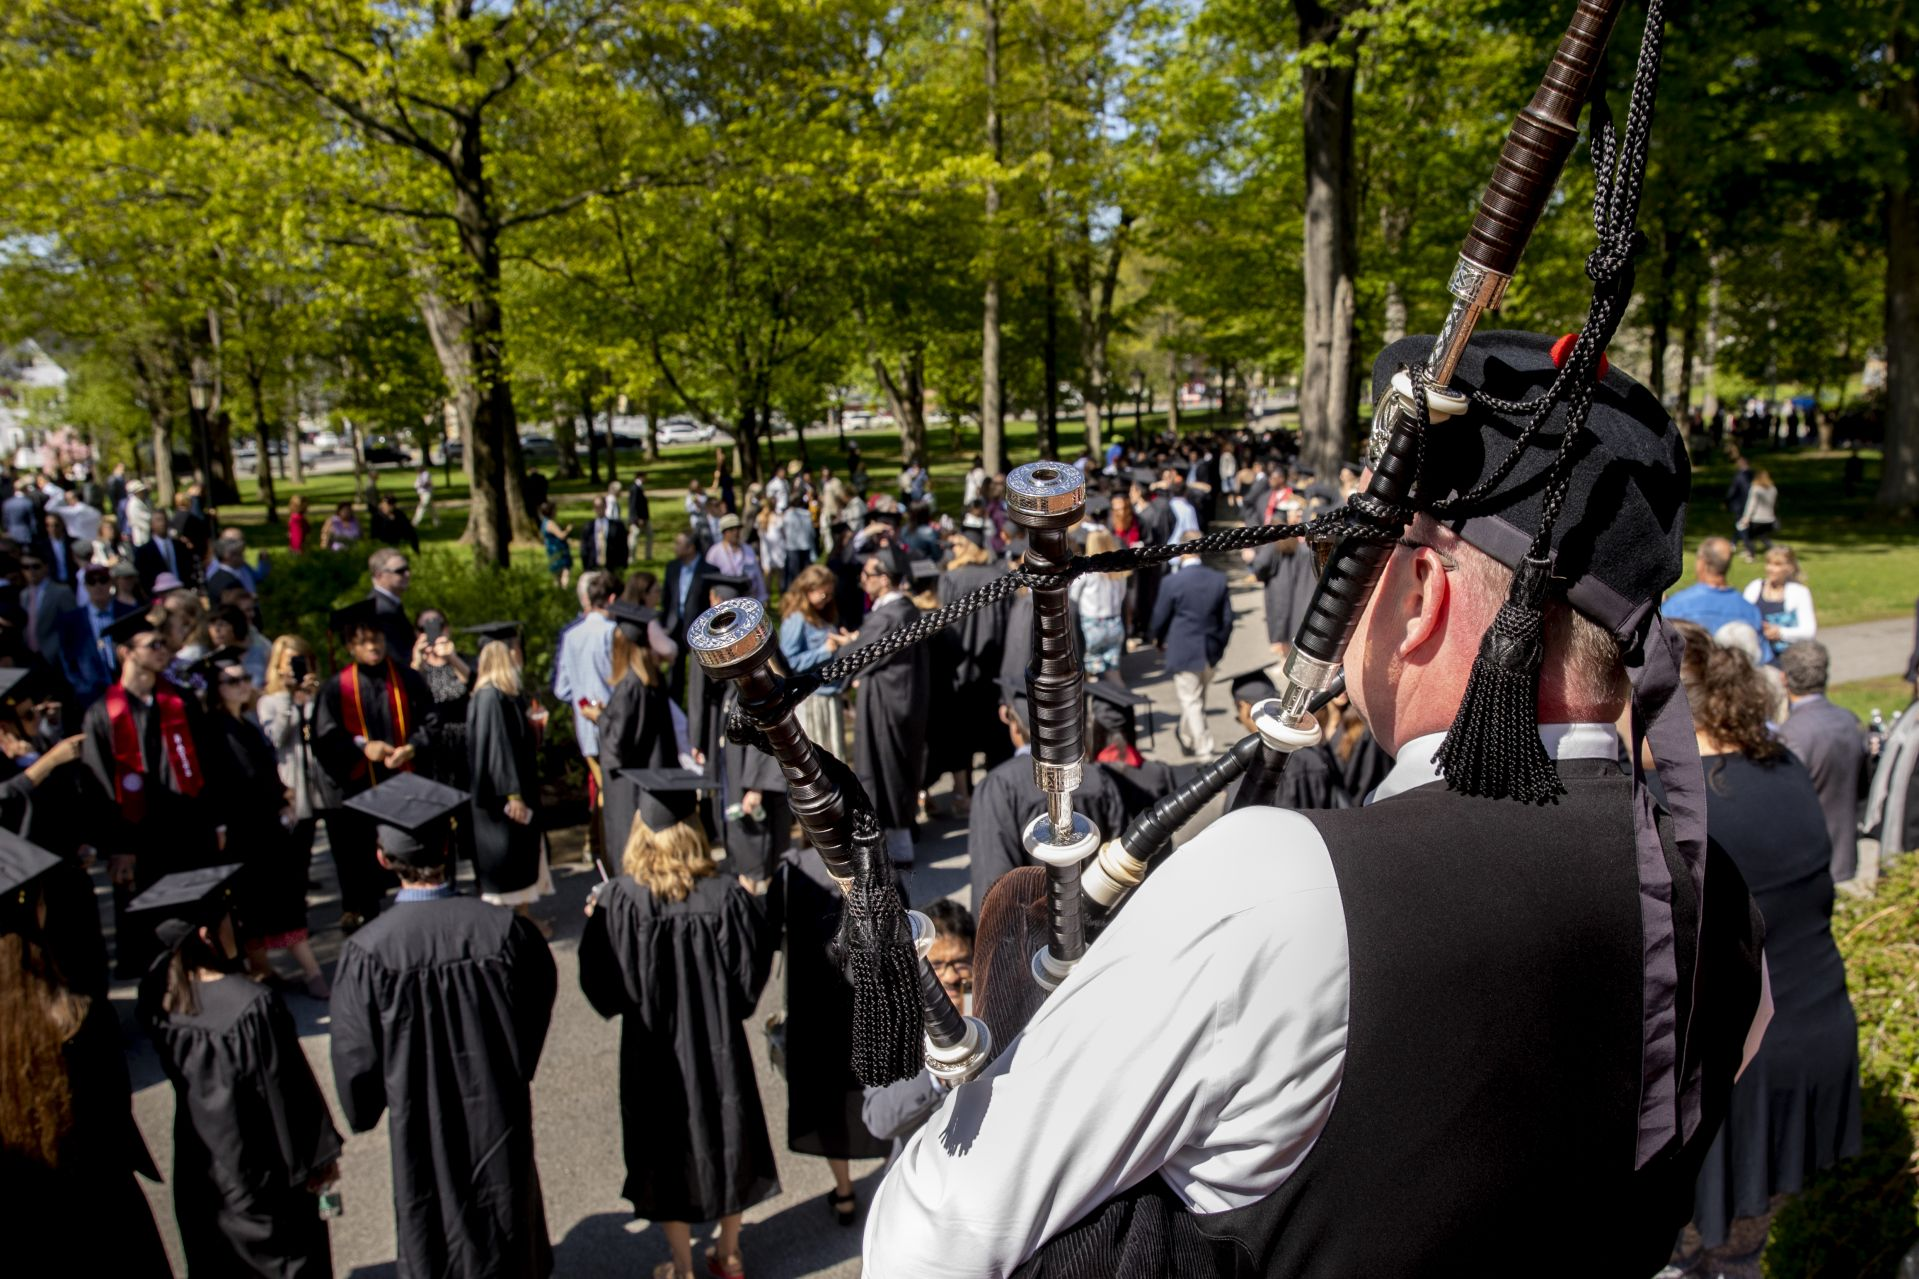 Bates College 2019 Commencement (the one hundred and fifty-third) on the Historic Quad, at which Travis Mills receives an Doctor of Humane Letter. Placing the collar on Mills is the college's mace bearer, Charles Franklin Phillips Professor of EconomicsMichael Murray.Piper Tom Ryan on the steps of Hathorn plays during the processional on Alumni Walk where students have lined up.